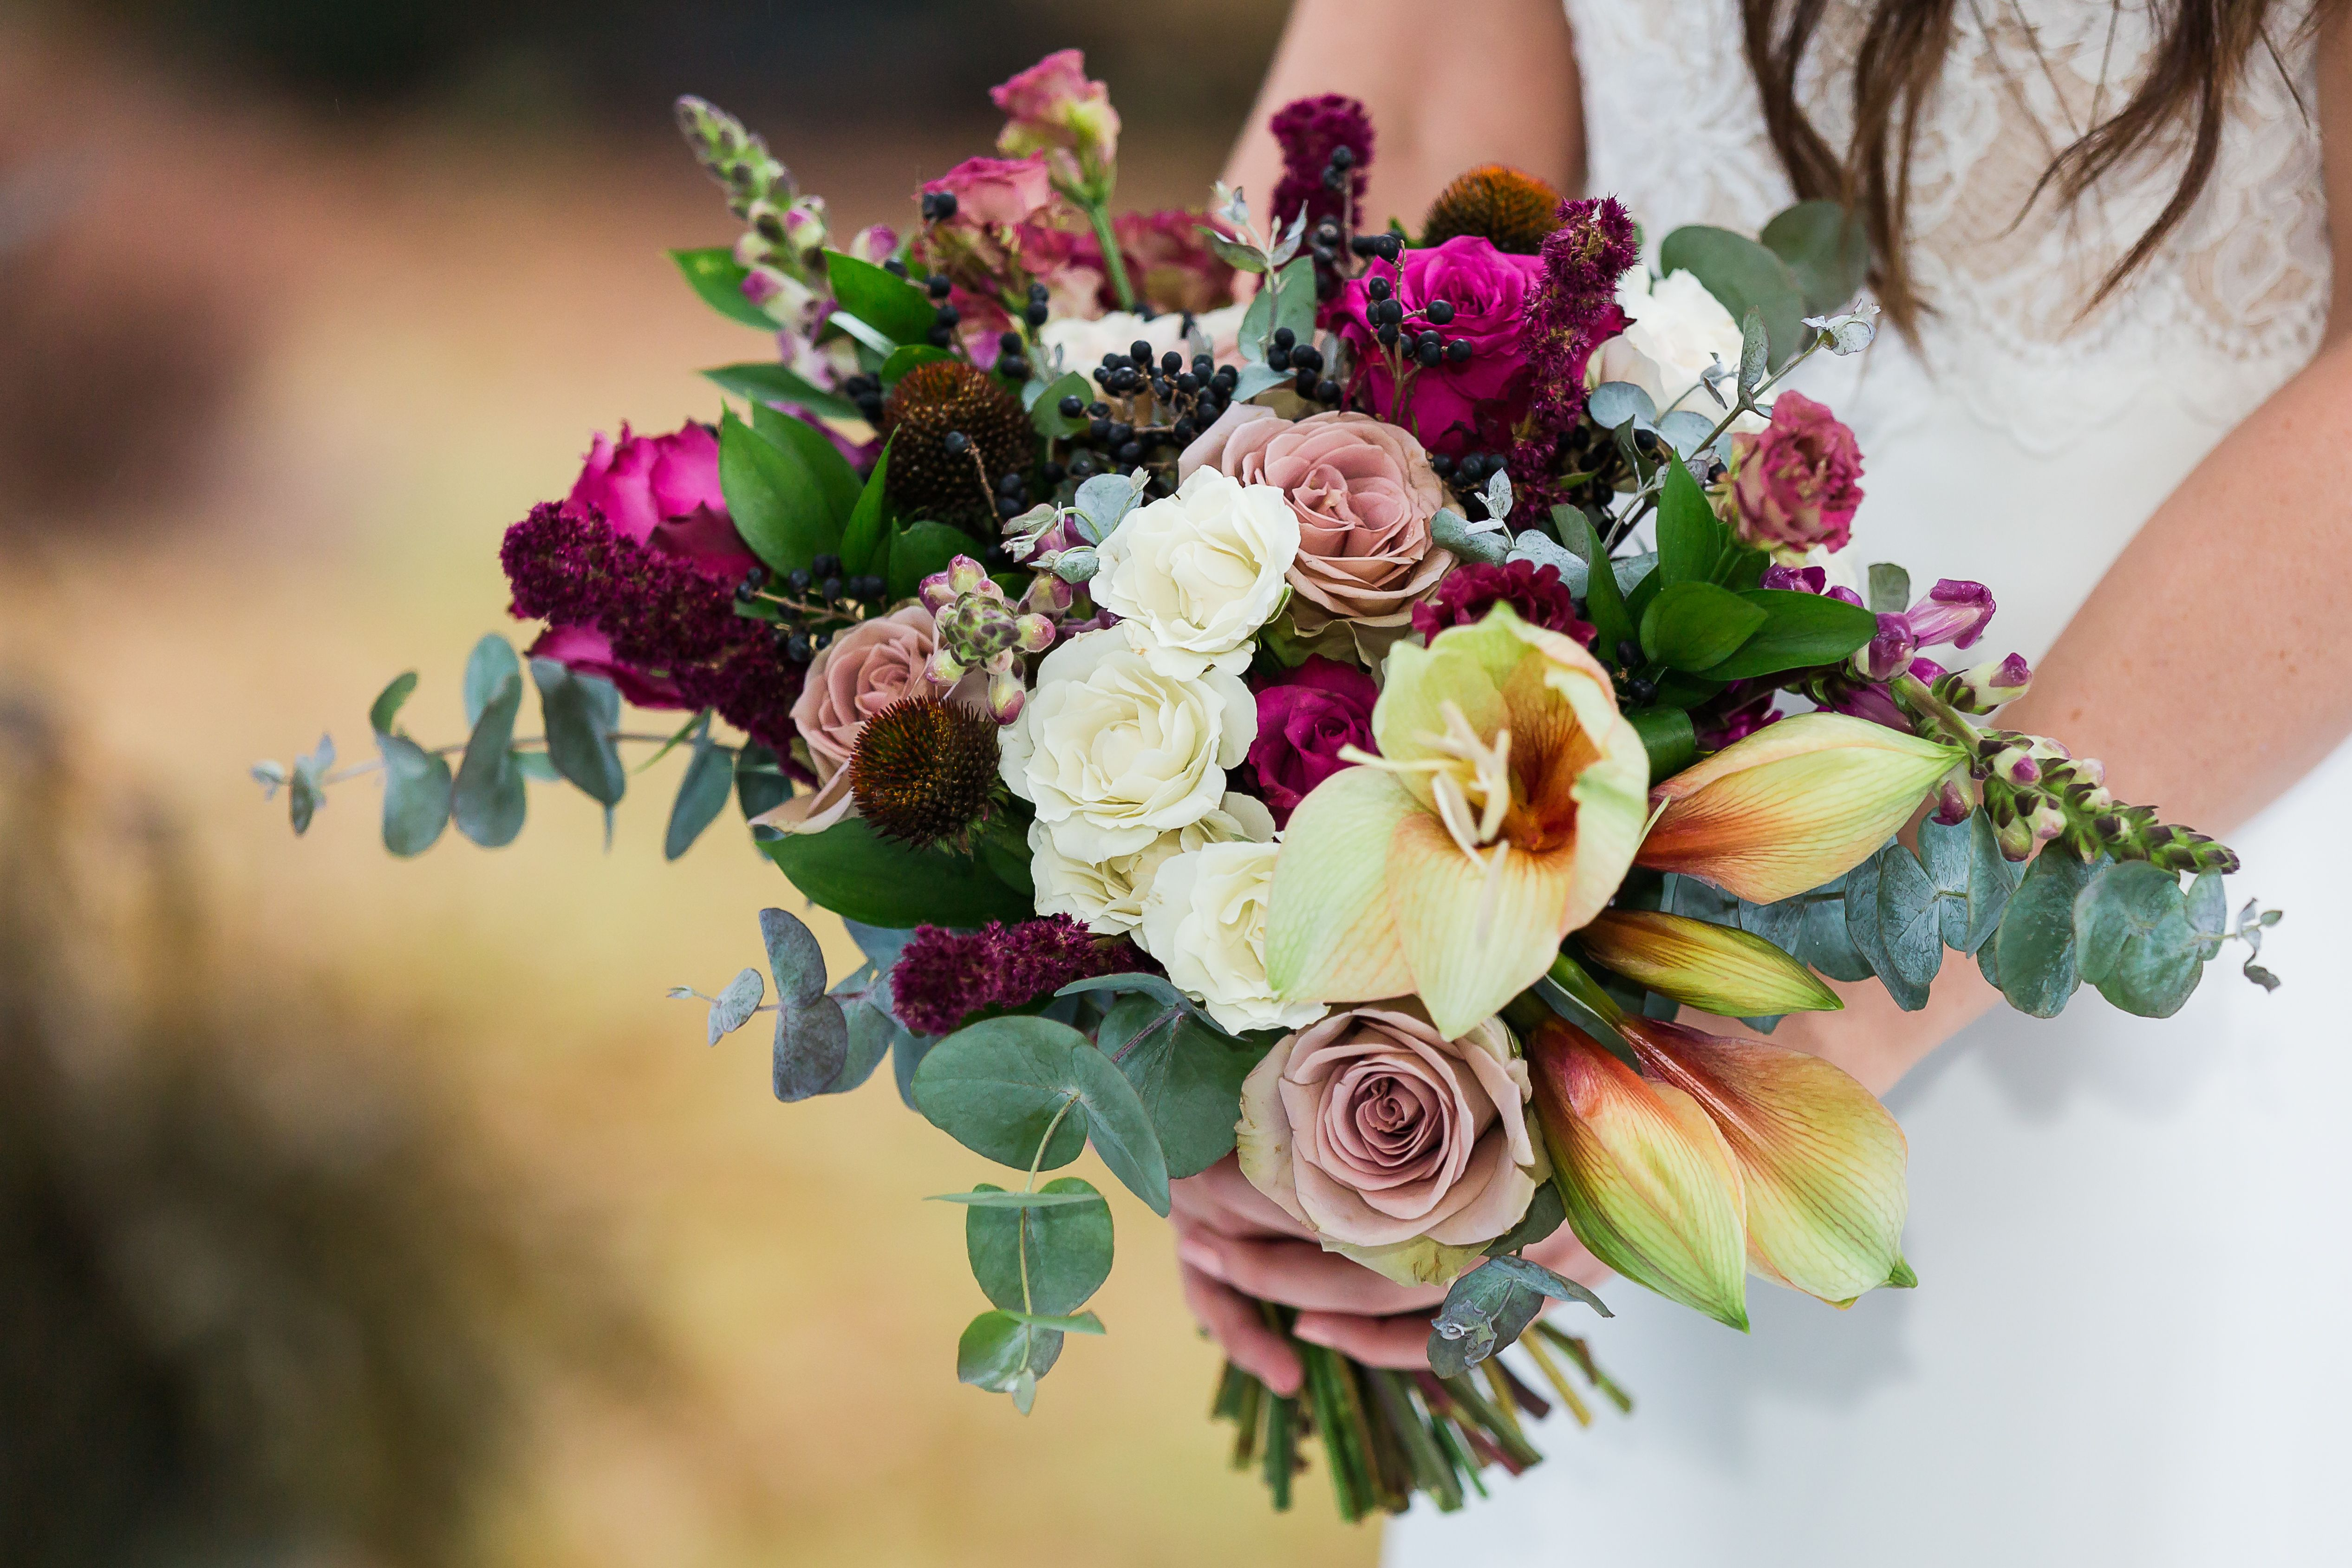 Bridal bouquet with amaryllis and garden roses. Burgundy